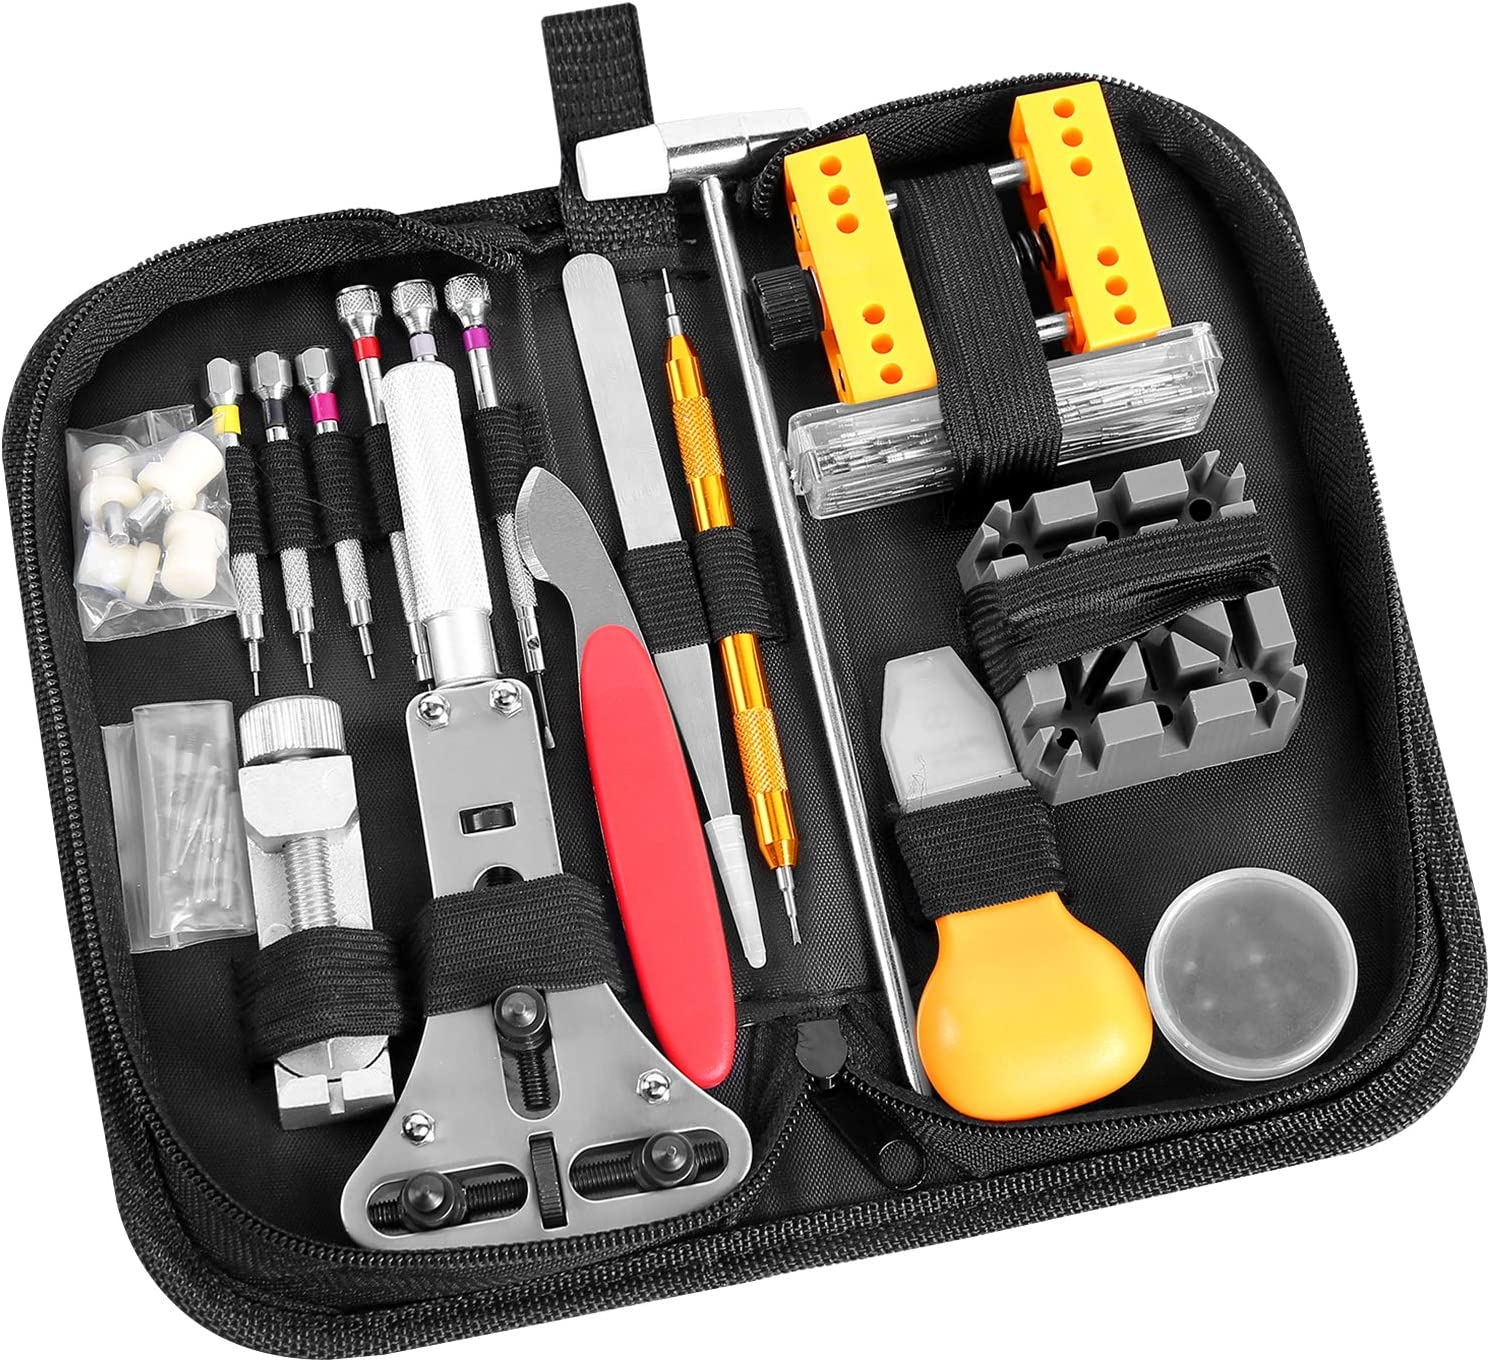 Ohuhu 174 PCS Watch Repair Tool Kit, Case Opener Spring Bar Watch Band Link Tool Set With Carrying Bag, Replace Watch Battery Helper Multifunctional Tools With User Manual For Beginner: Home Improvement